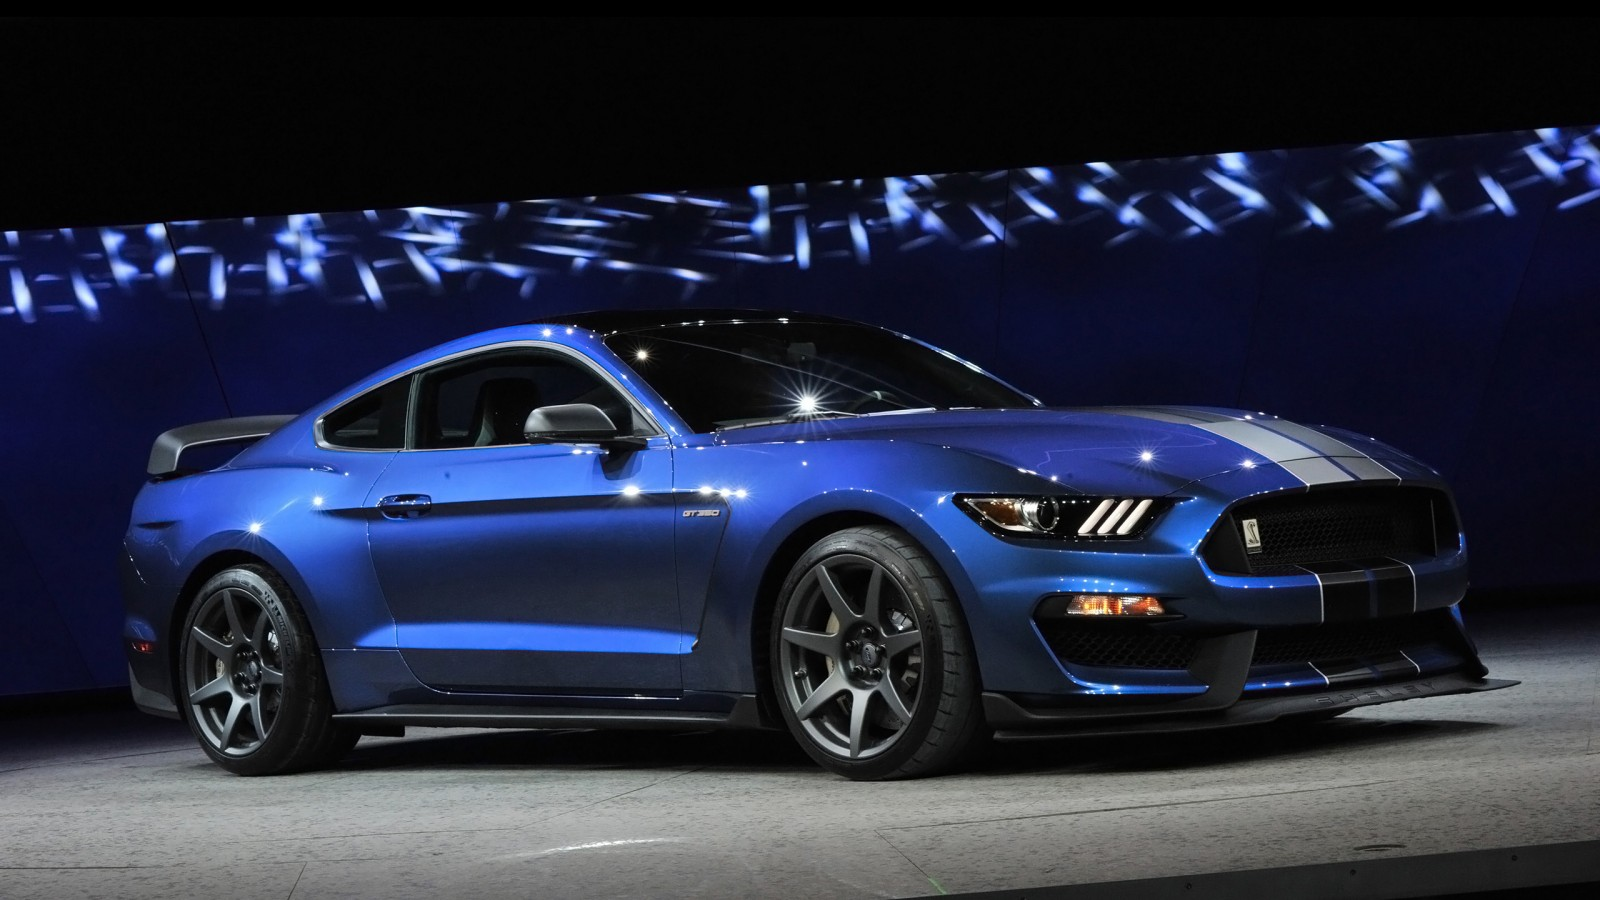 Ford shelby photo - 1